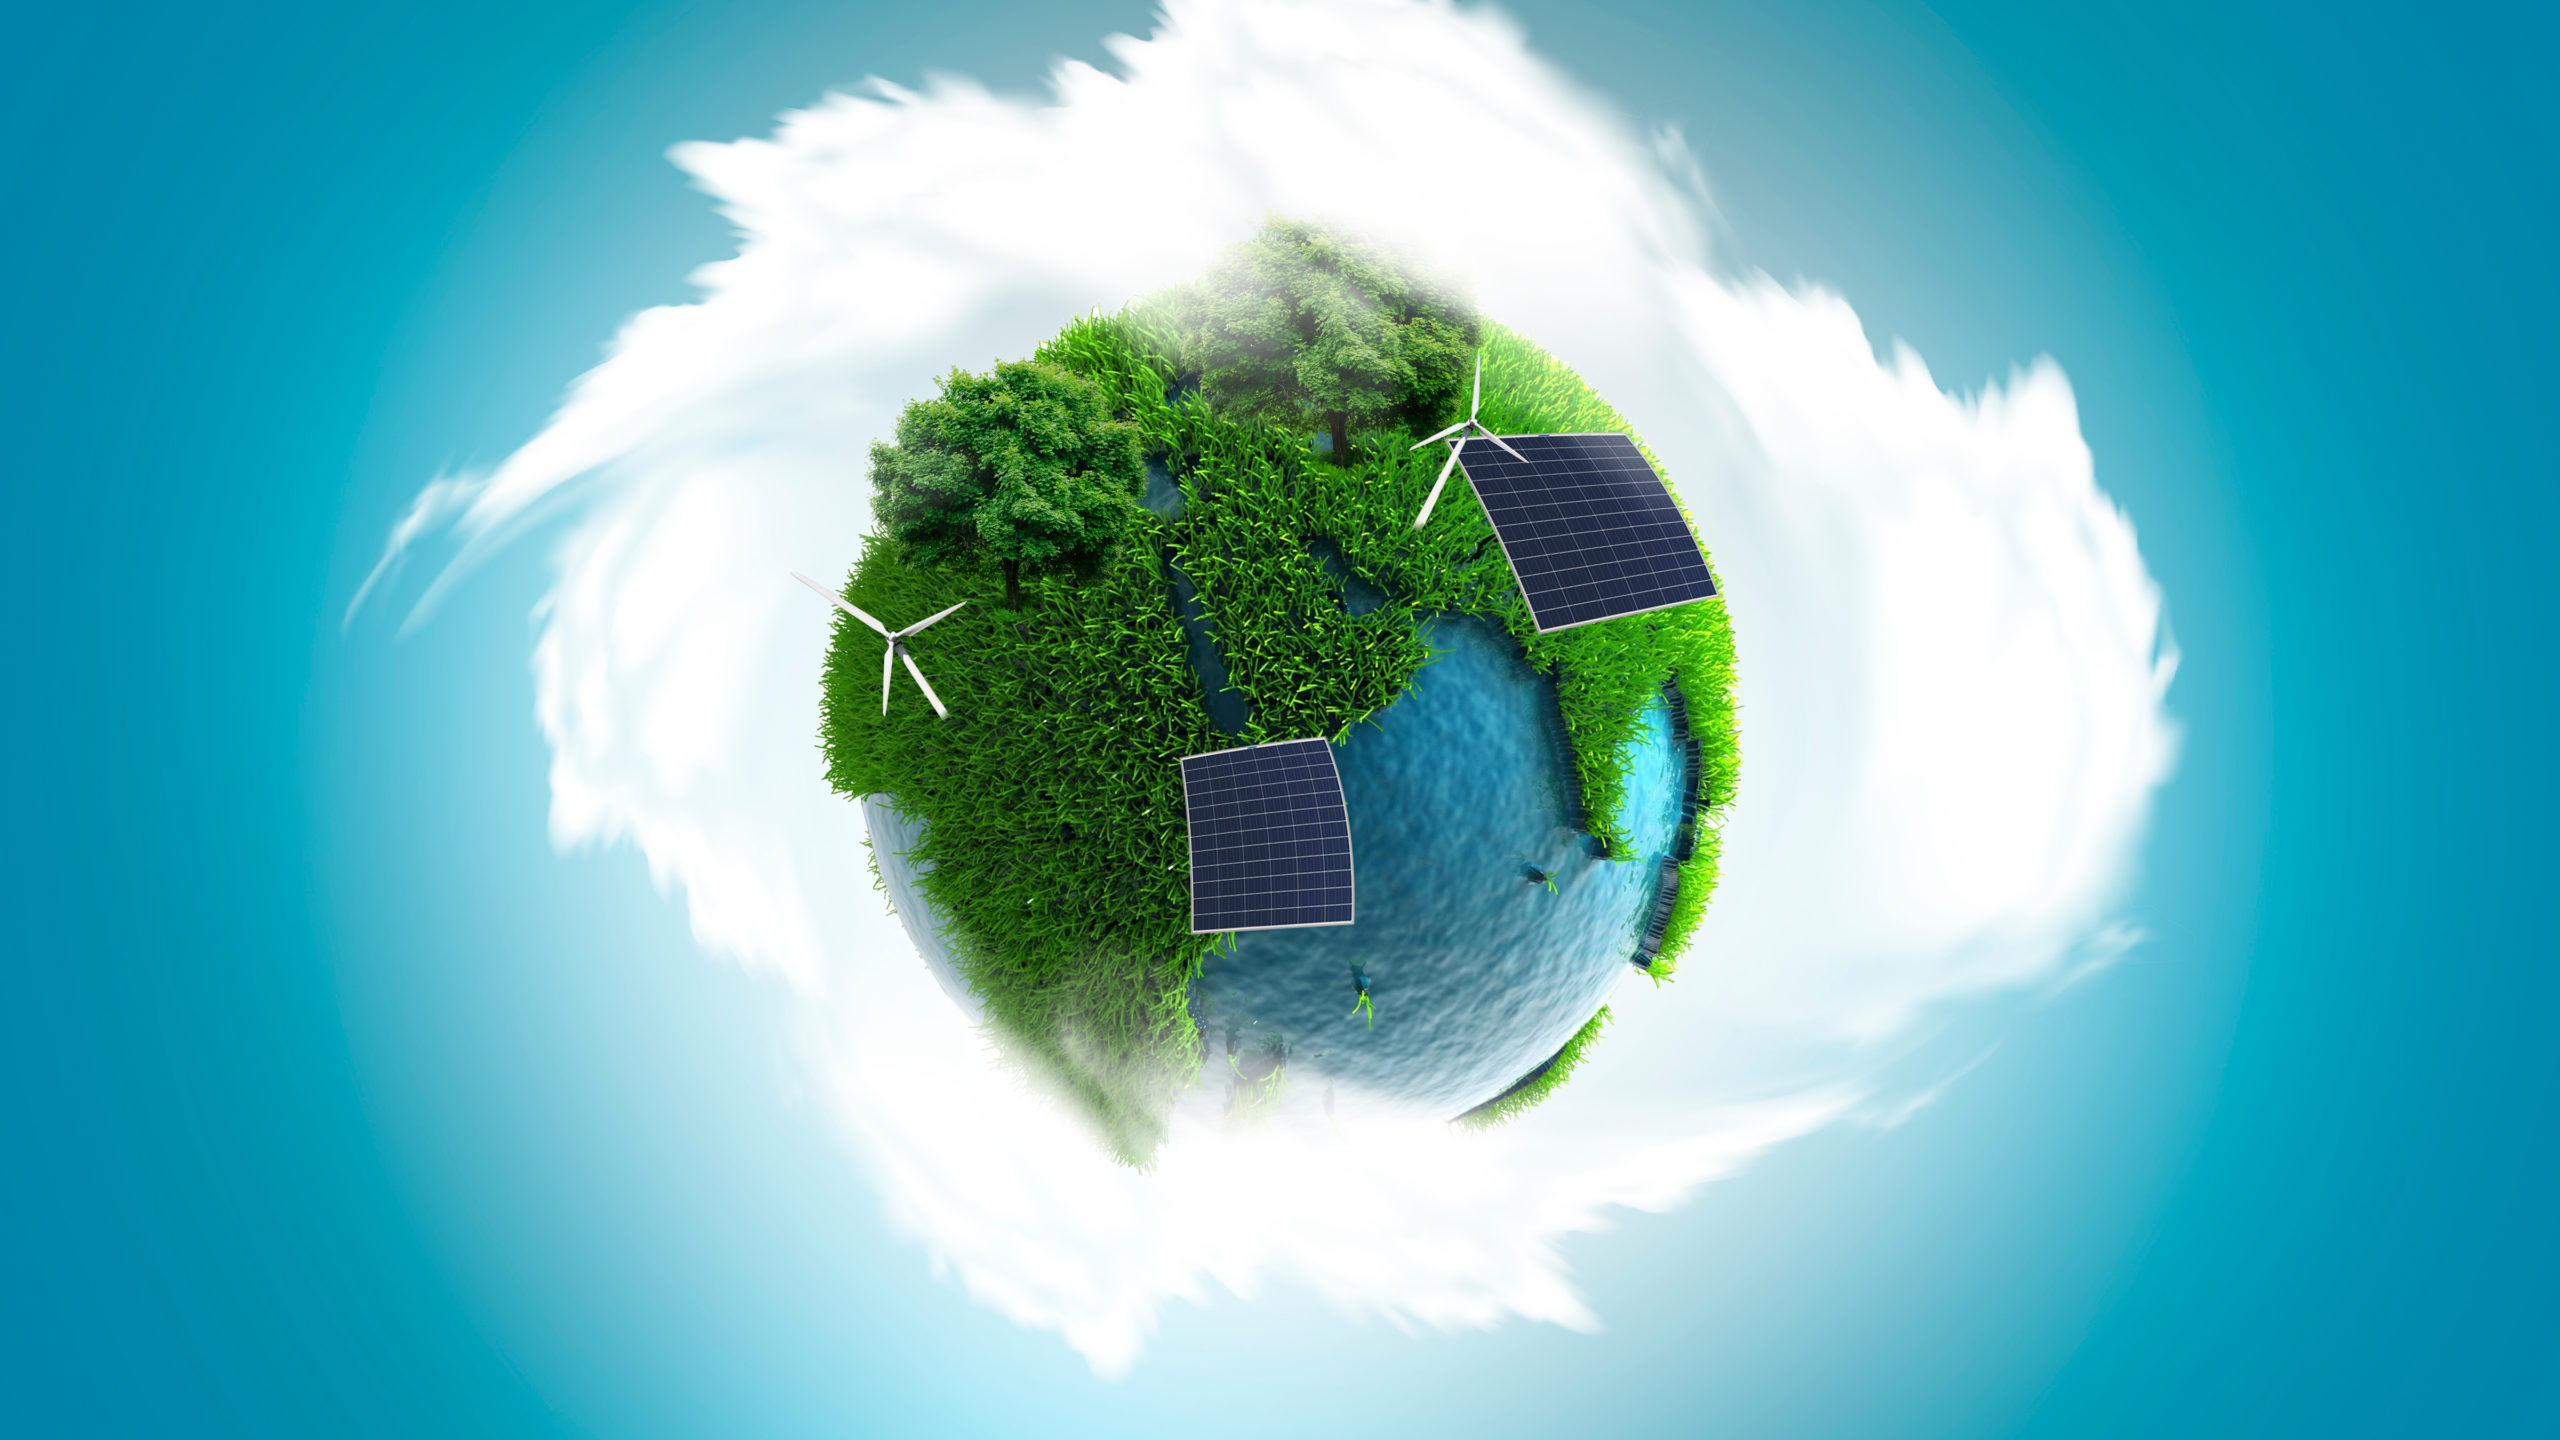 Making peace with nature through green innovation